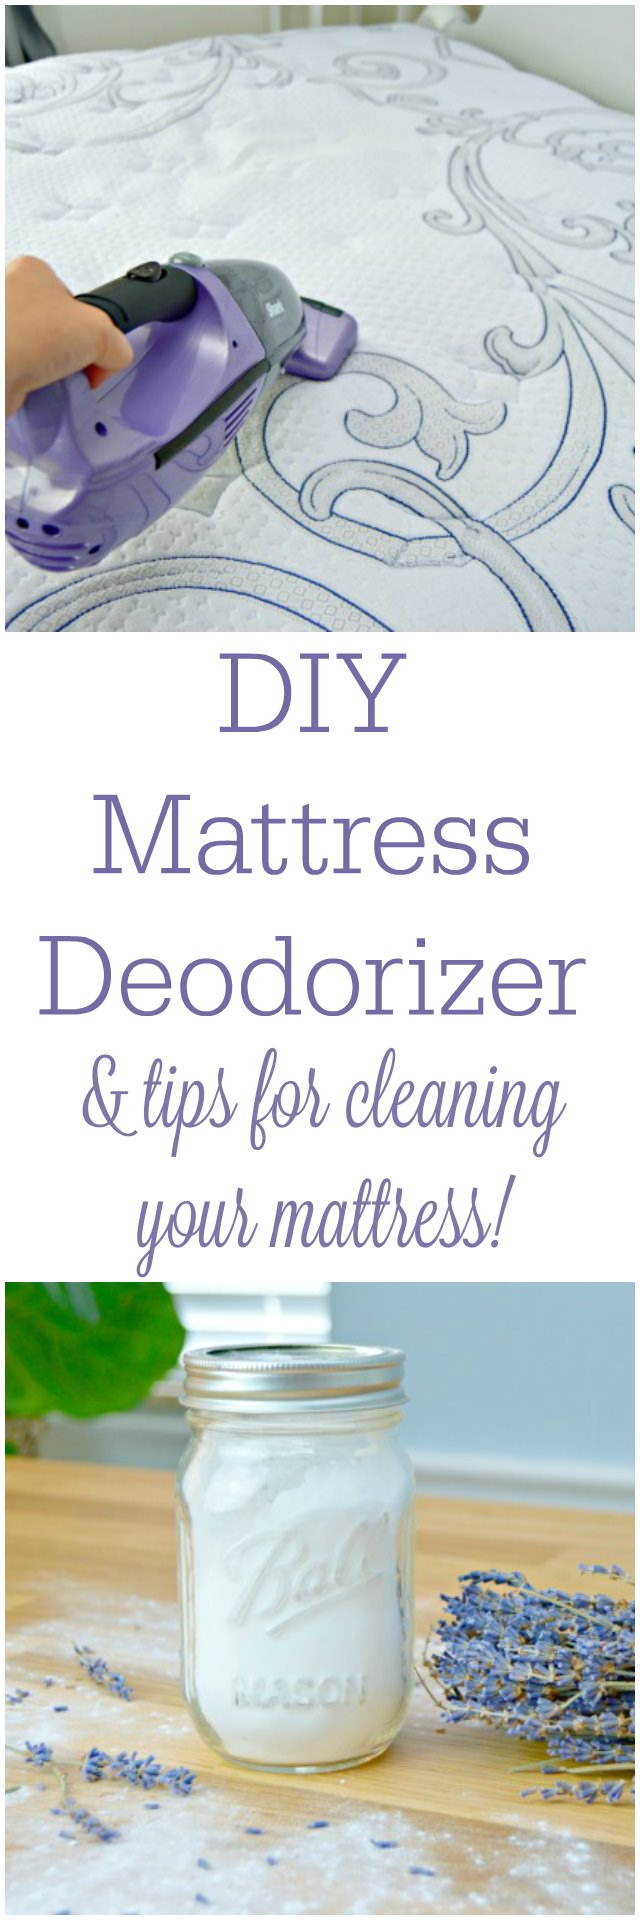 diy-mattress-deodorizer